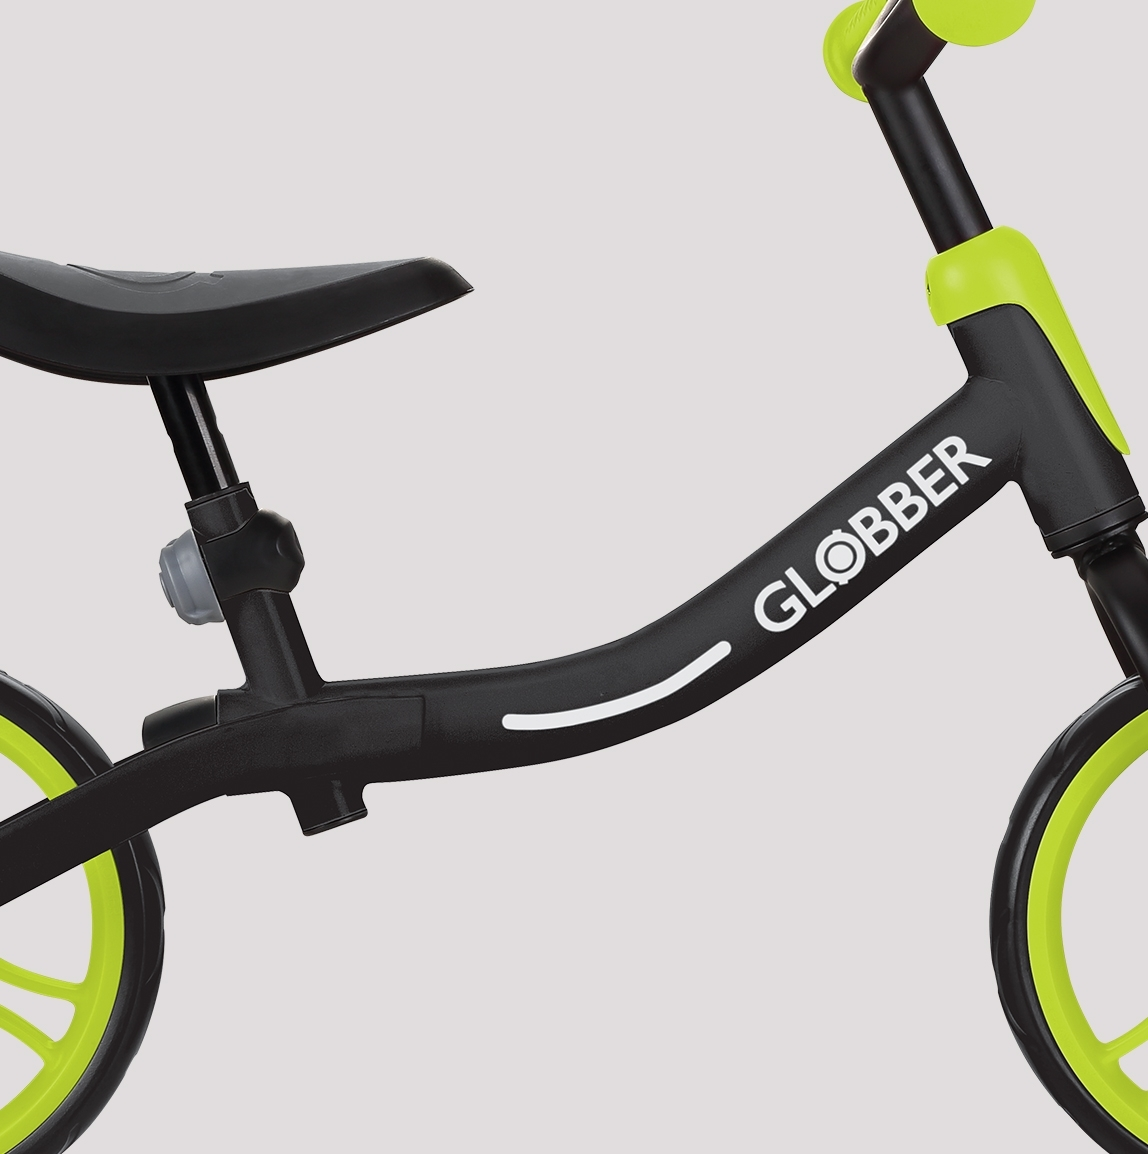 Durable kids bike